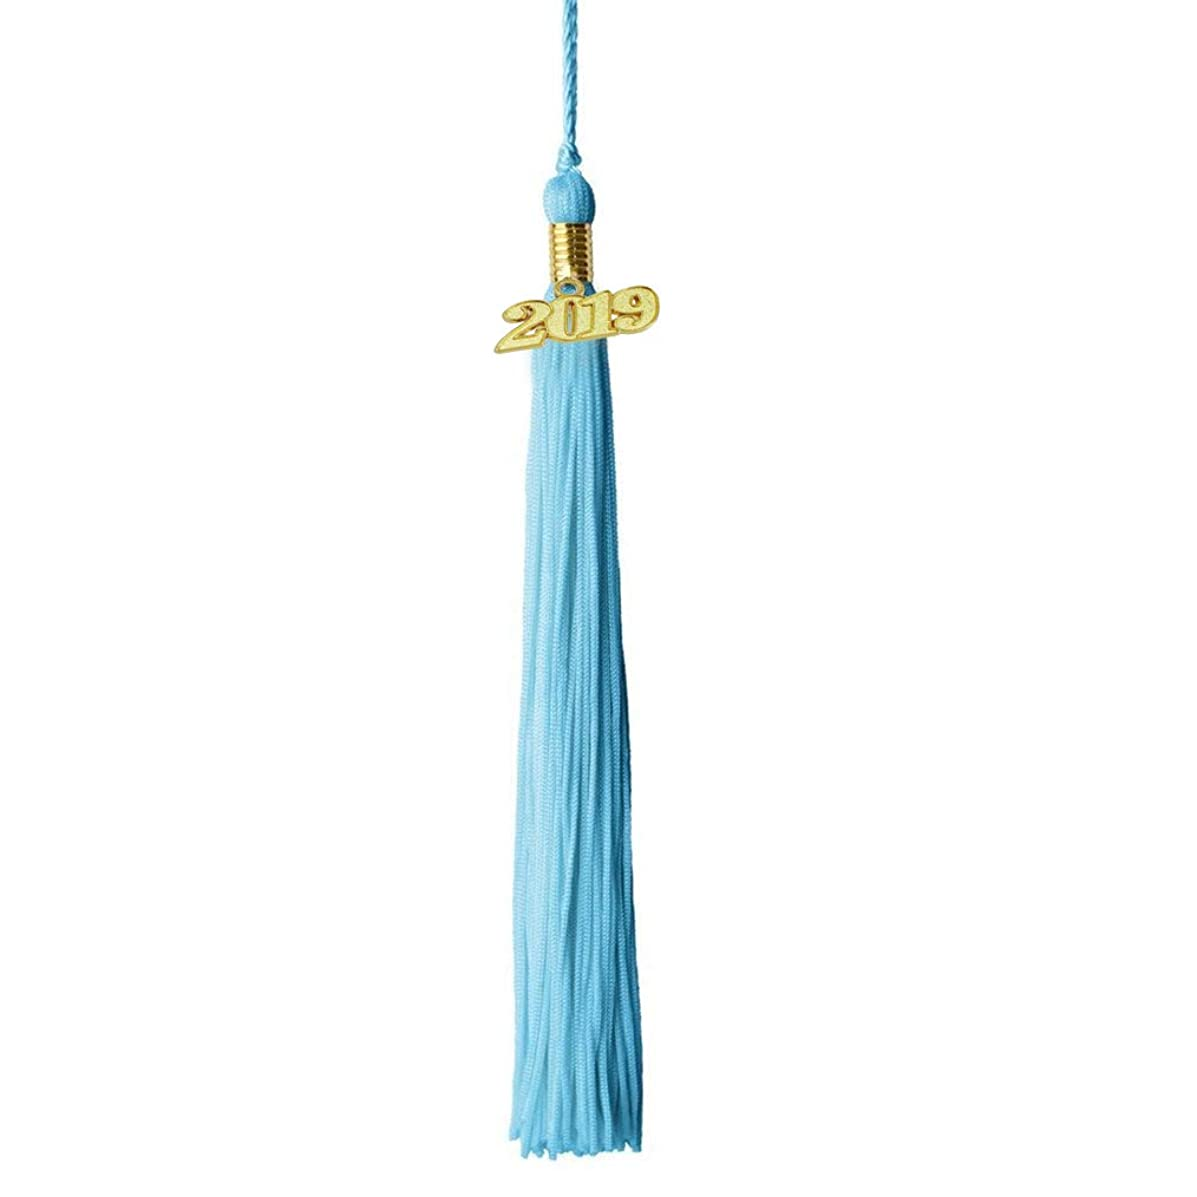 GraduationPro Two Color Academic Graduation Tassel with Gold 2019 Year Charm,9 Inch